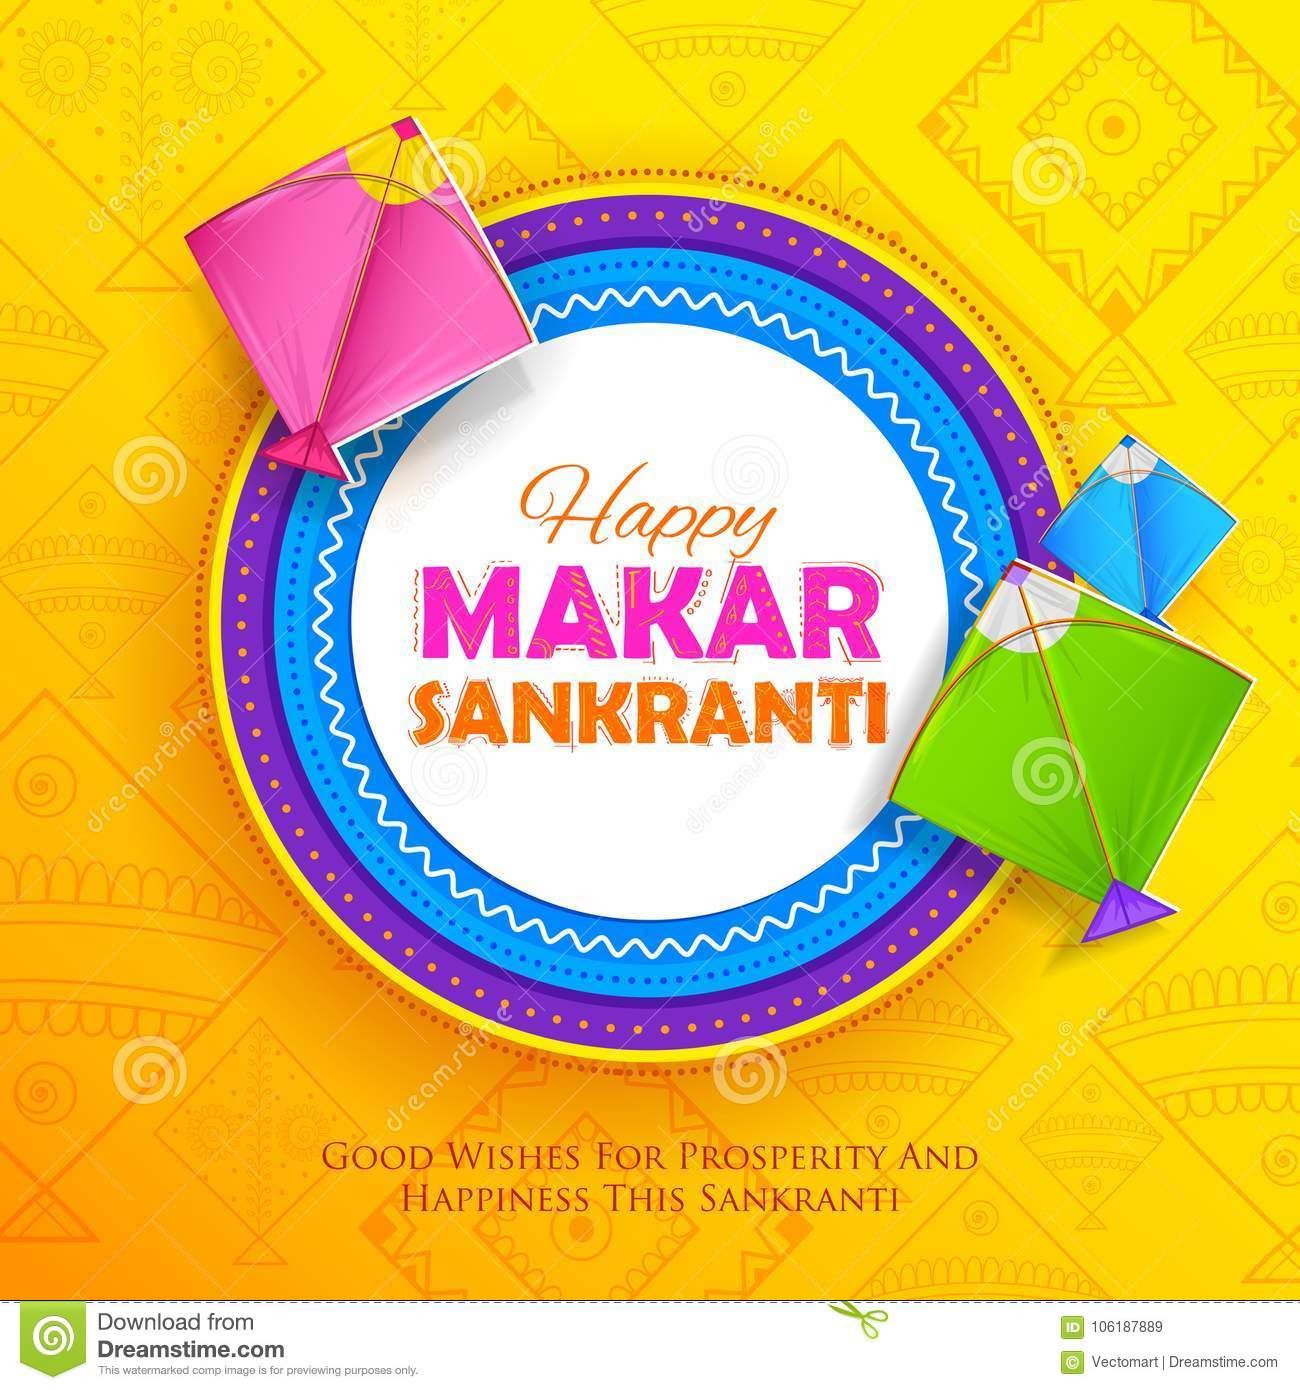 Happy makar sankranti wallpaper with colorful kite string stock download happy makar sankranti wallpaper with colorful kite string stock vector illustration of colorful m4hsunfo